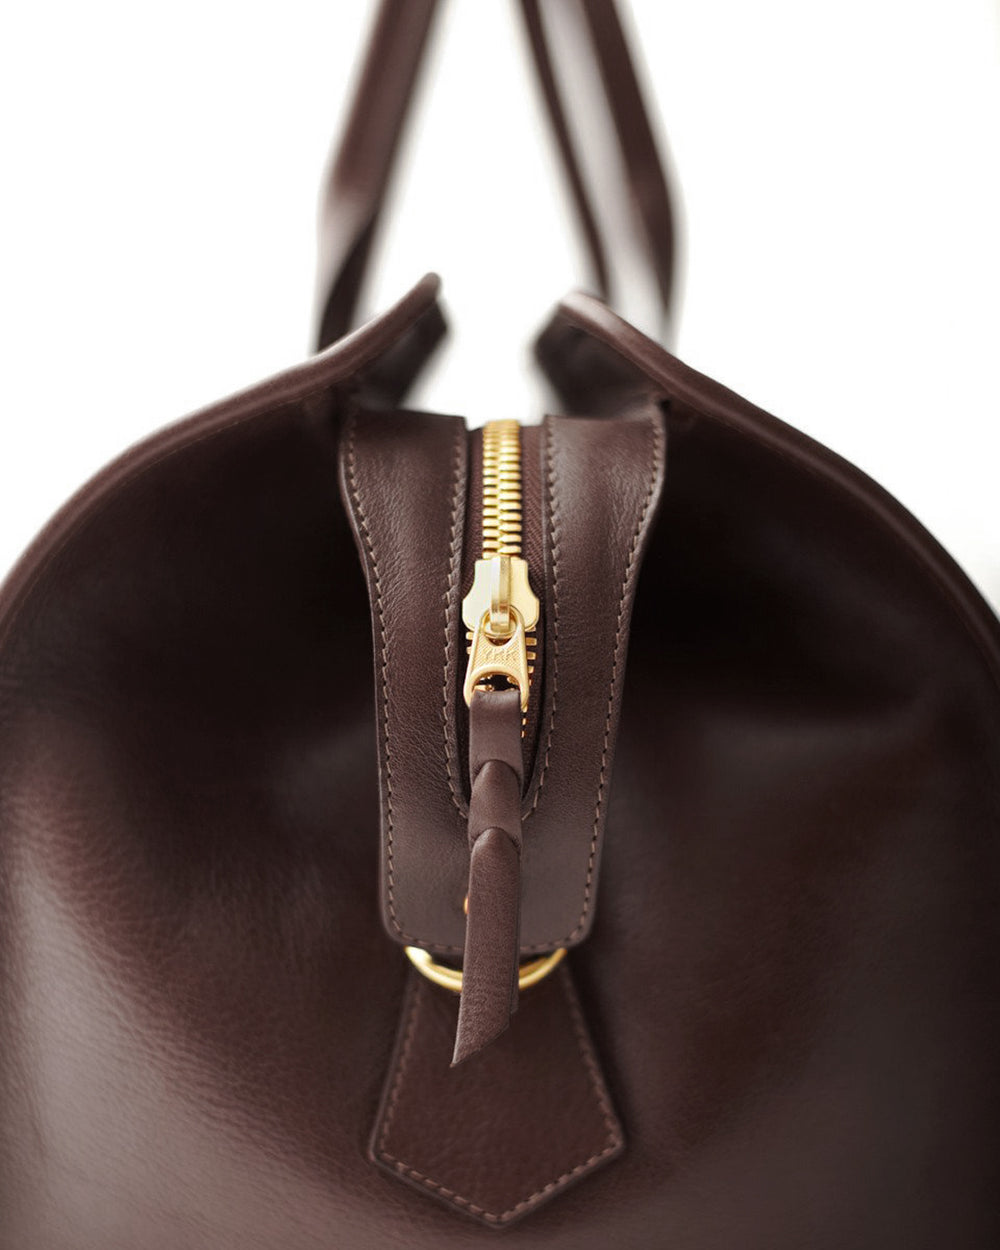 Leather Duffle Travel Bag Chocolate